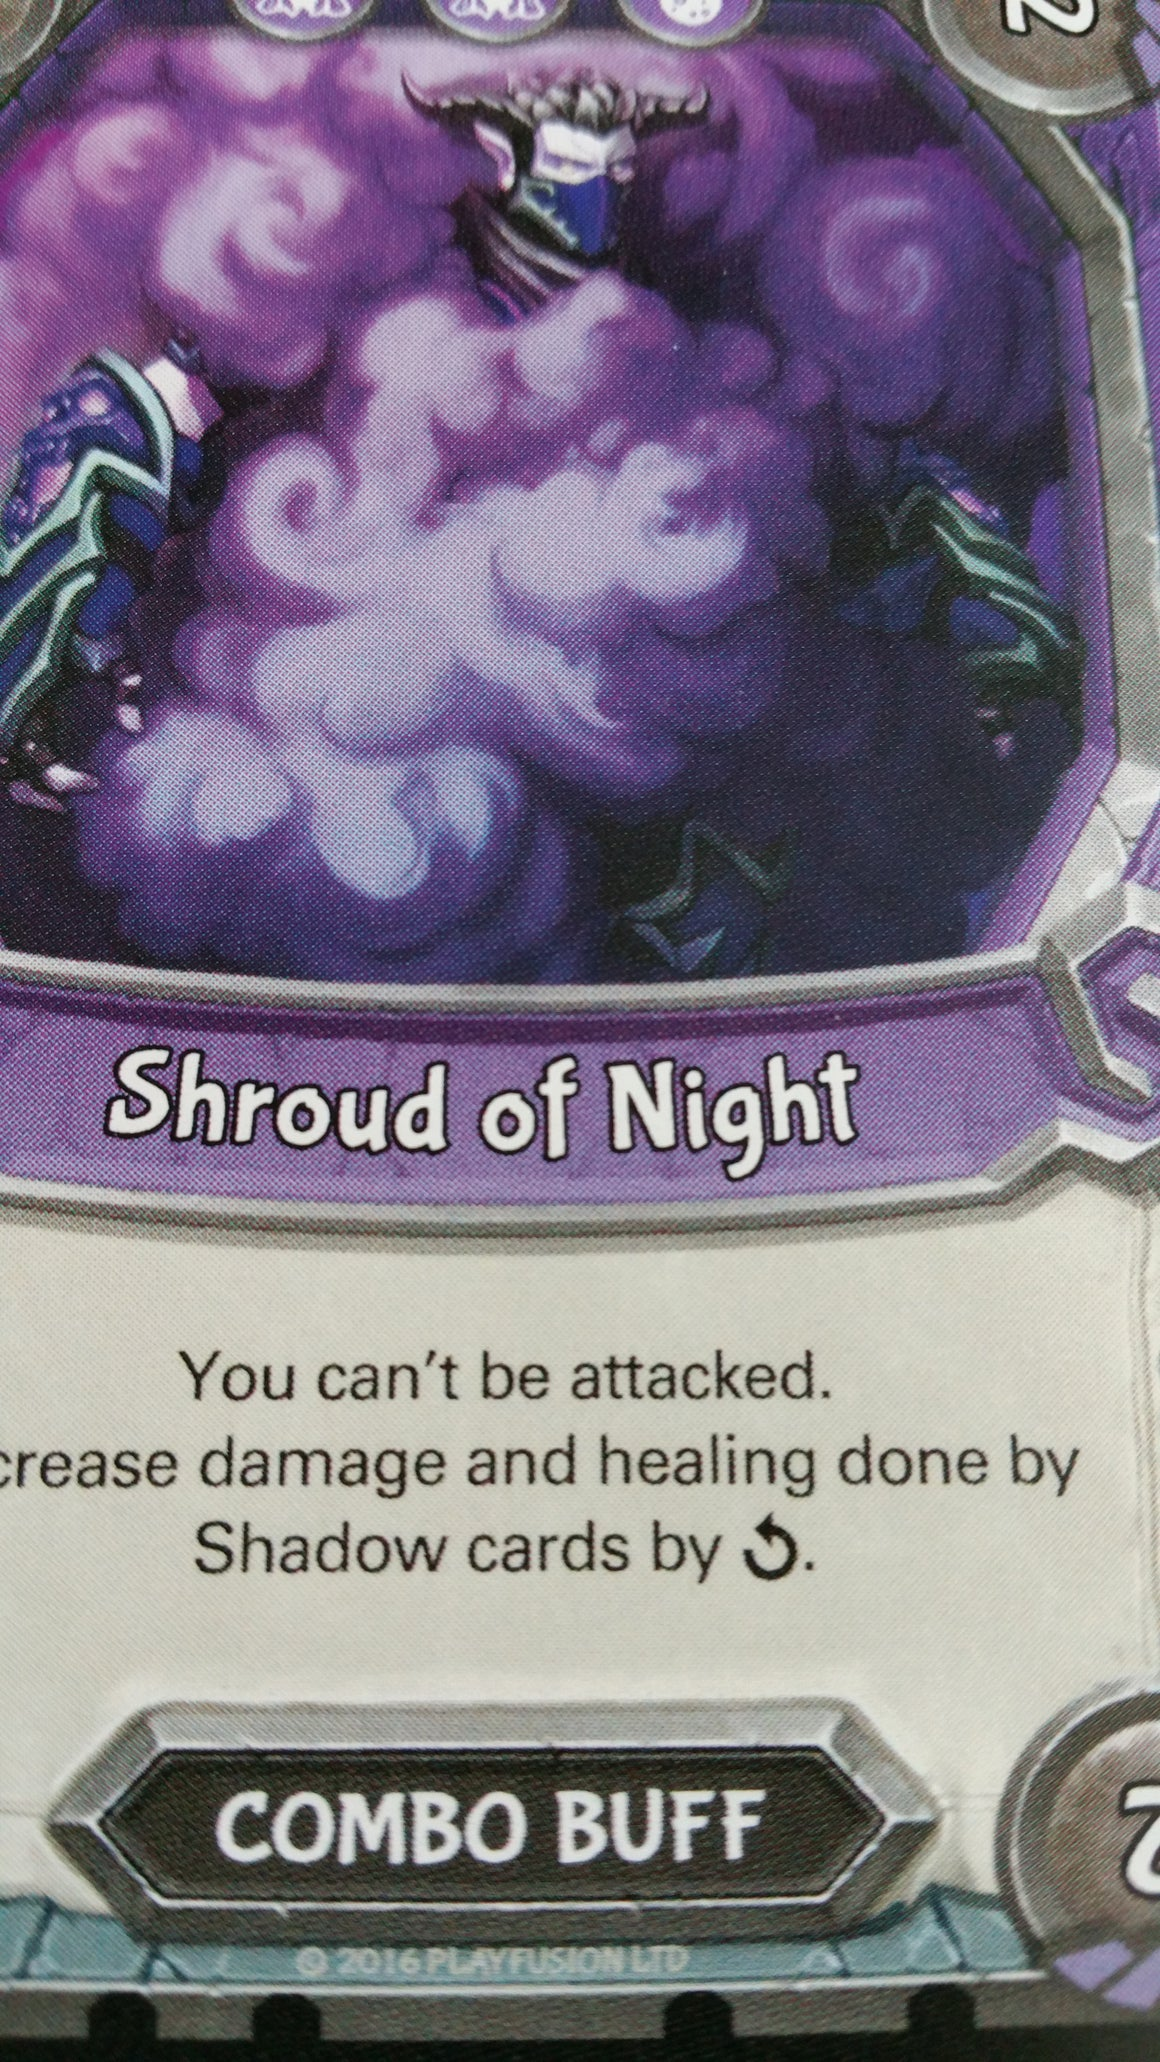 Lightseekers - Dread - Combo Buff - Common - Shroud of Night